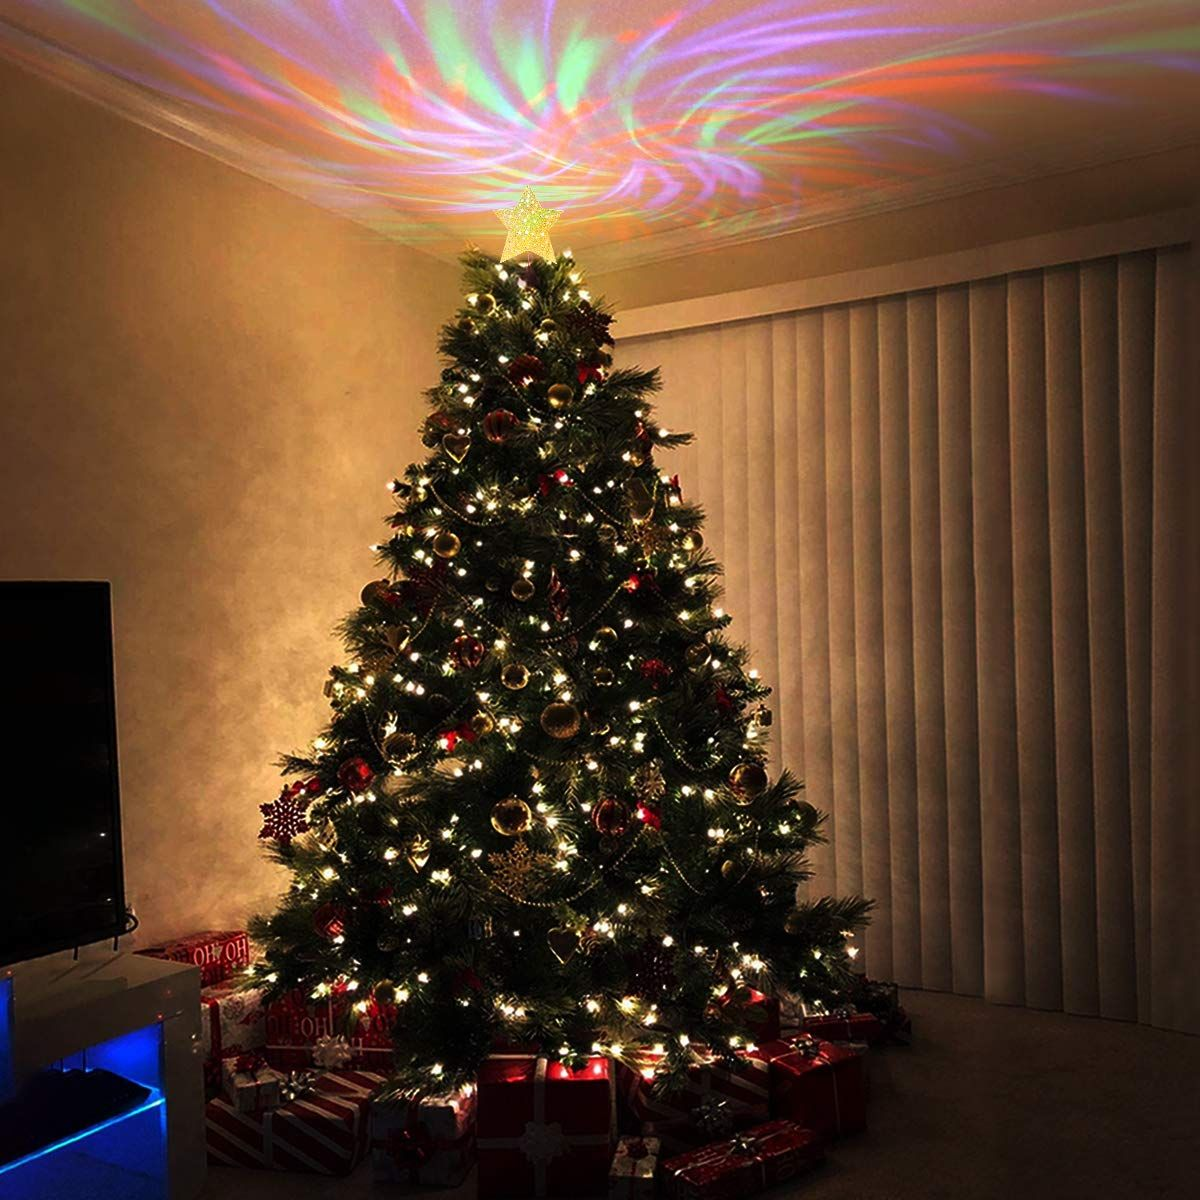 Yunlights Christmas Tree Topper Lighted Star Tree Topper With Wave Projector Christmas Tree Star Topper Christmas Tree Toppers Lighted Lighted Star Tree Topper